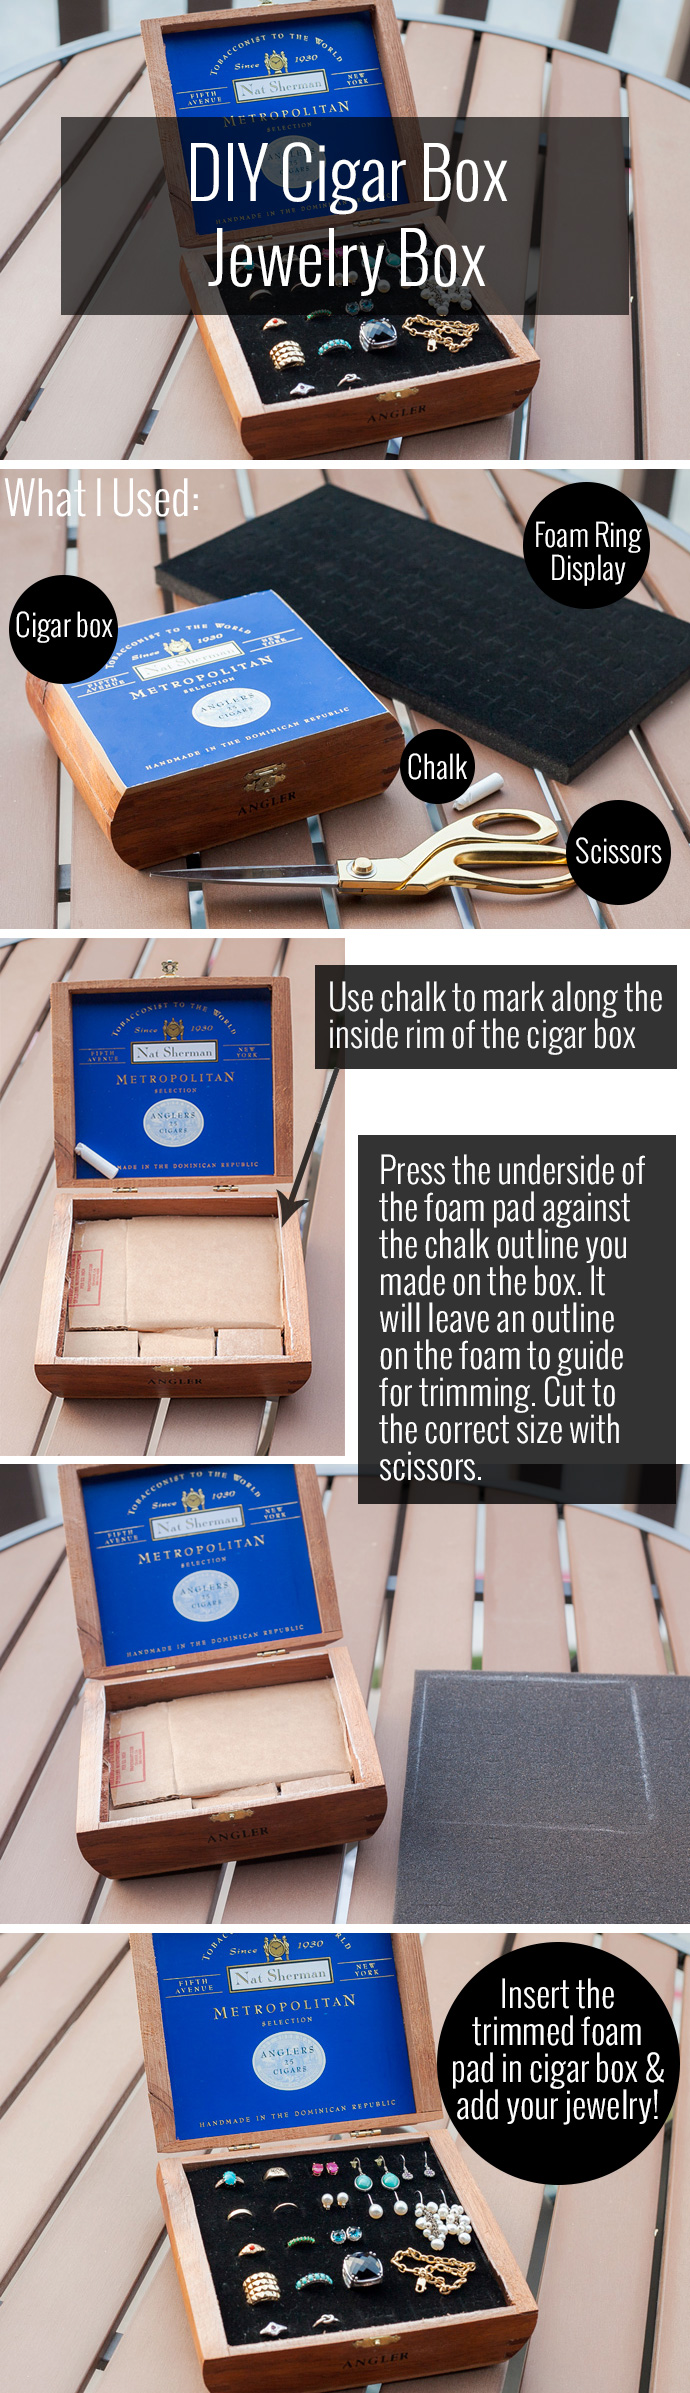 diy-cigar-box-jewelry-box